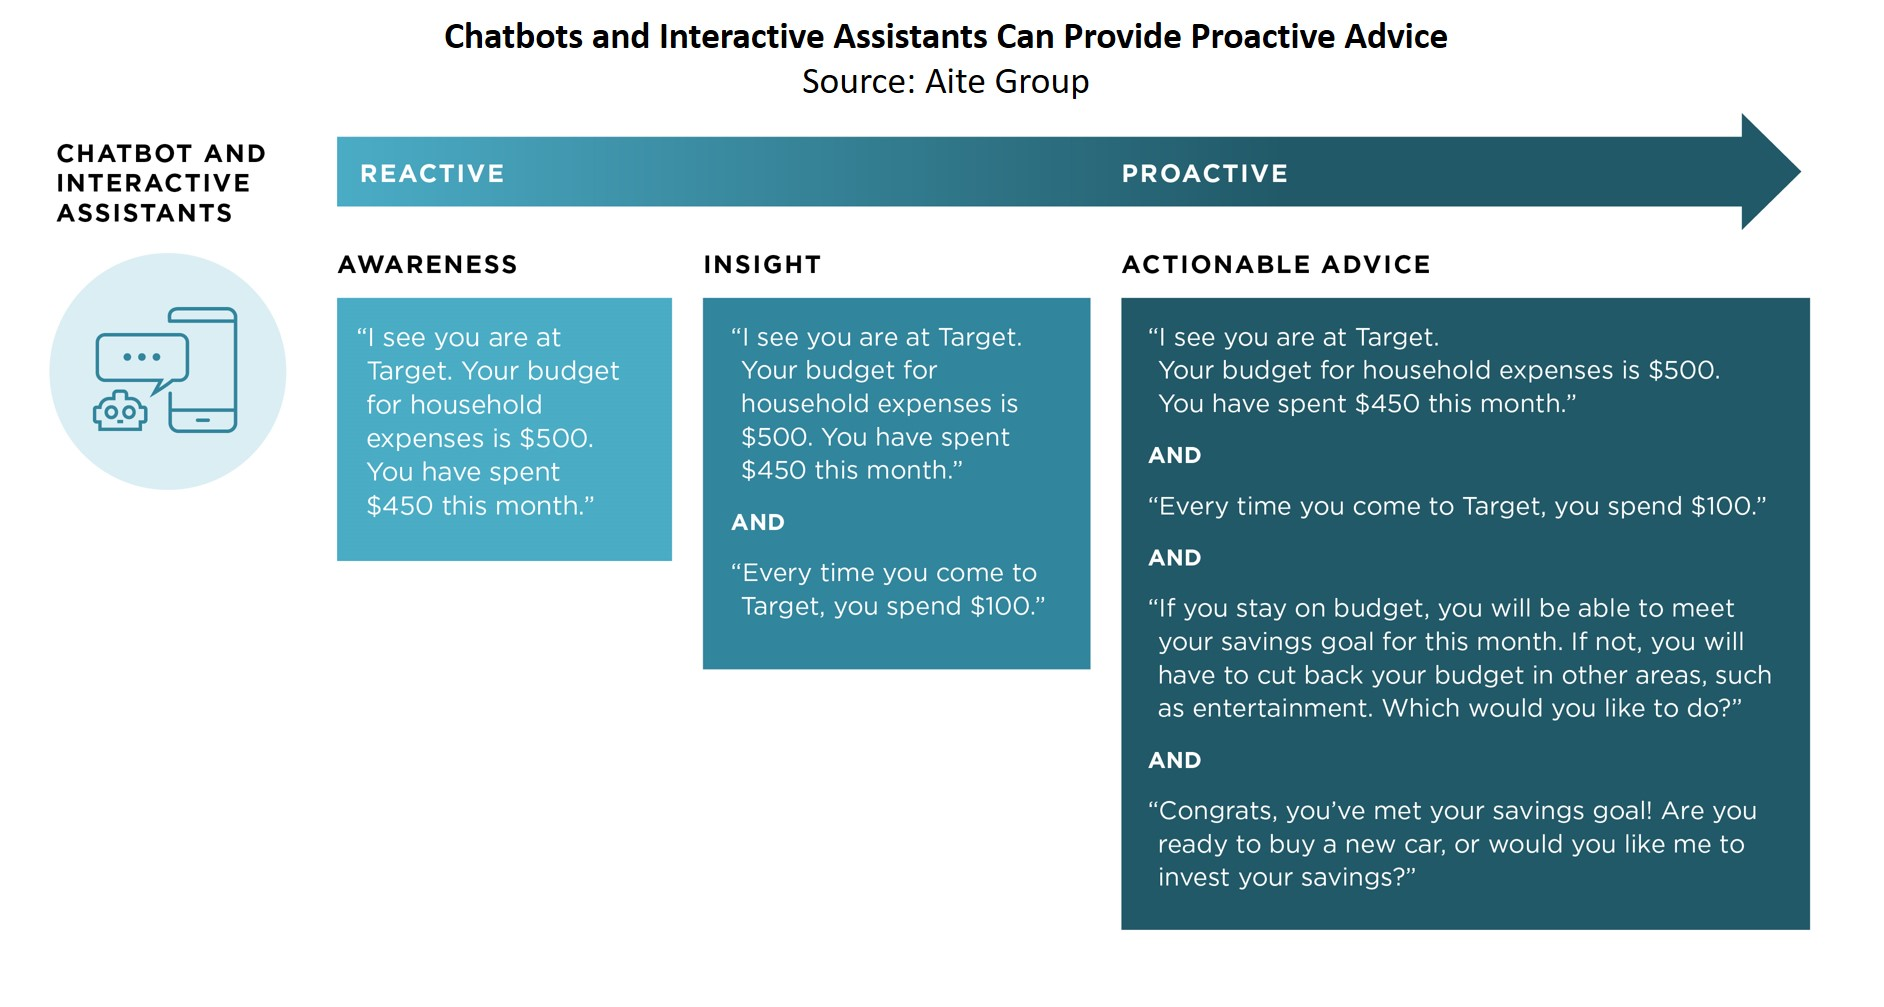 Chatbots and Interactive Assistants: Building an Engaging